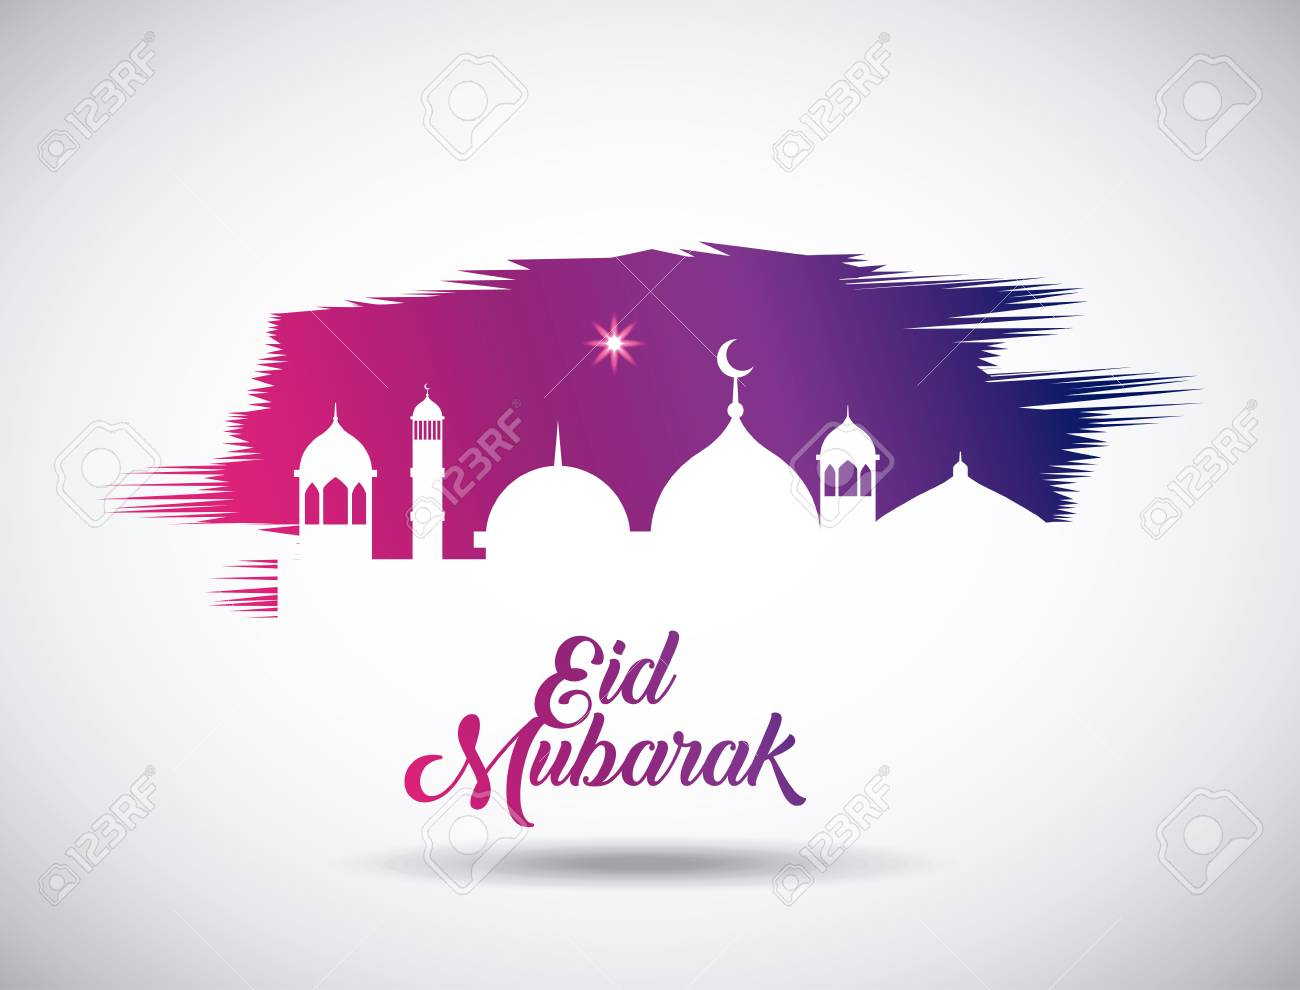 Eid Mubarak Background Icon Vector Illustration Design Graphic Royalty Free Cliparts Vectors And Stock Illustration Image 79266440